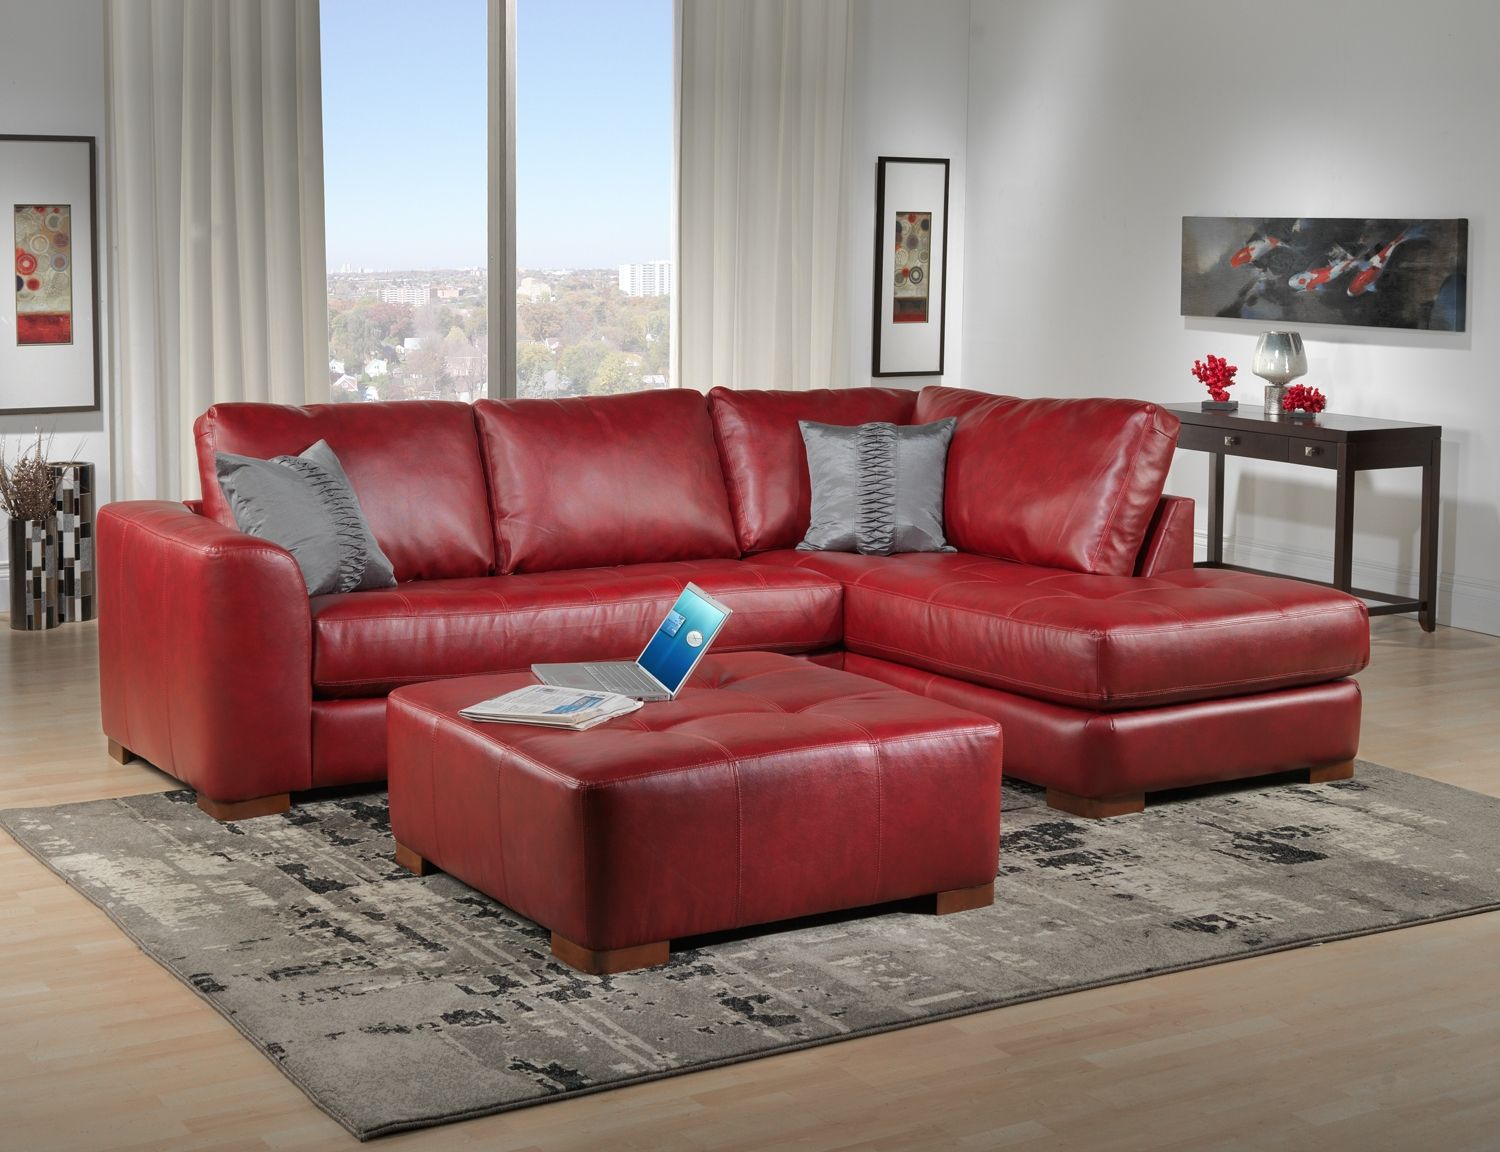 I Want A Red Leather Couch Humble Abode Pinterest